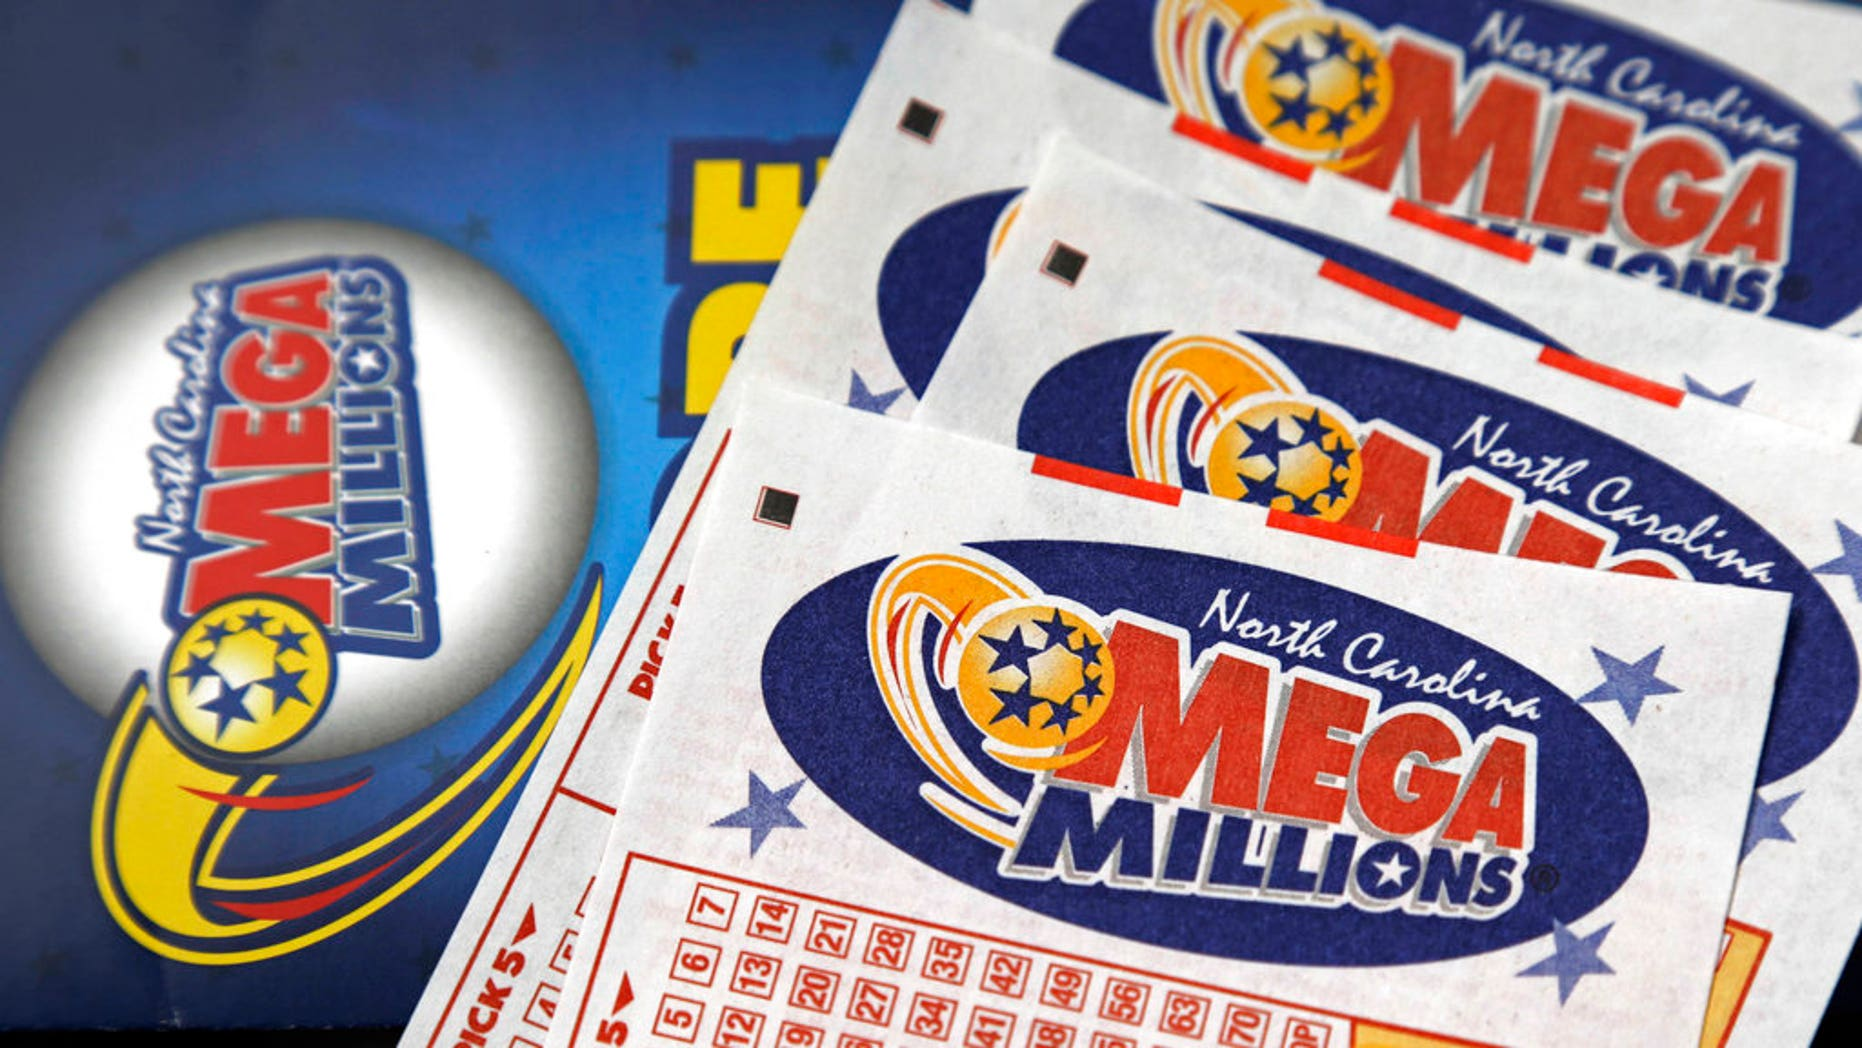 Tuesday's Mega Millions draw is estimated at $ 172 million. (AP Photo / Gerry Broome, File)